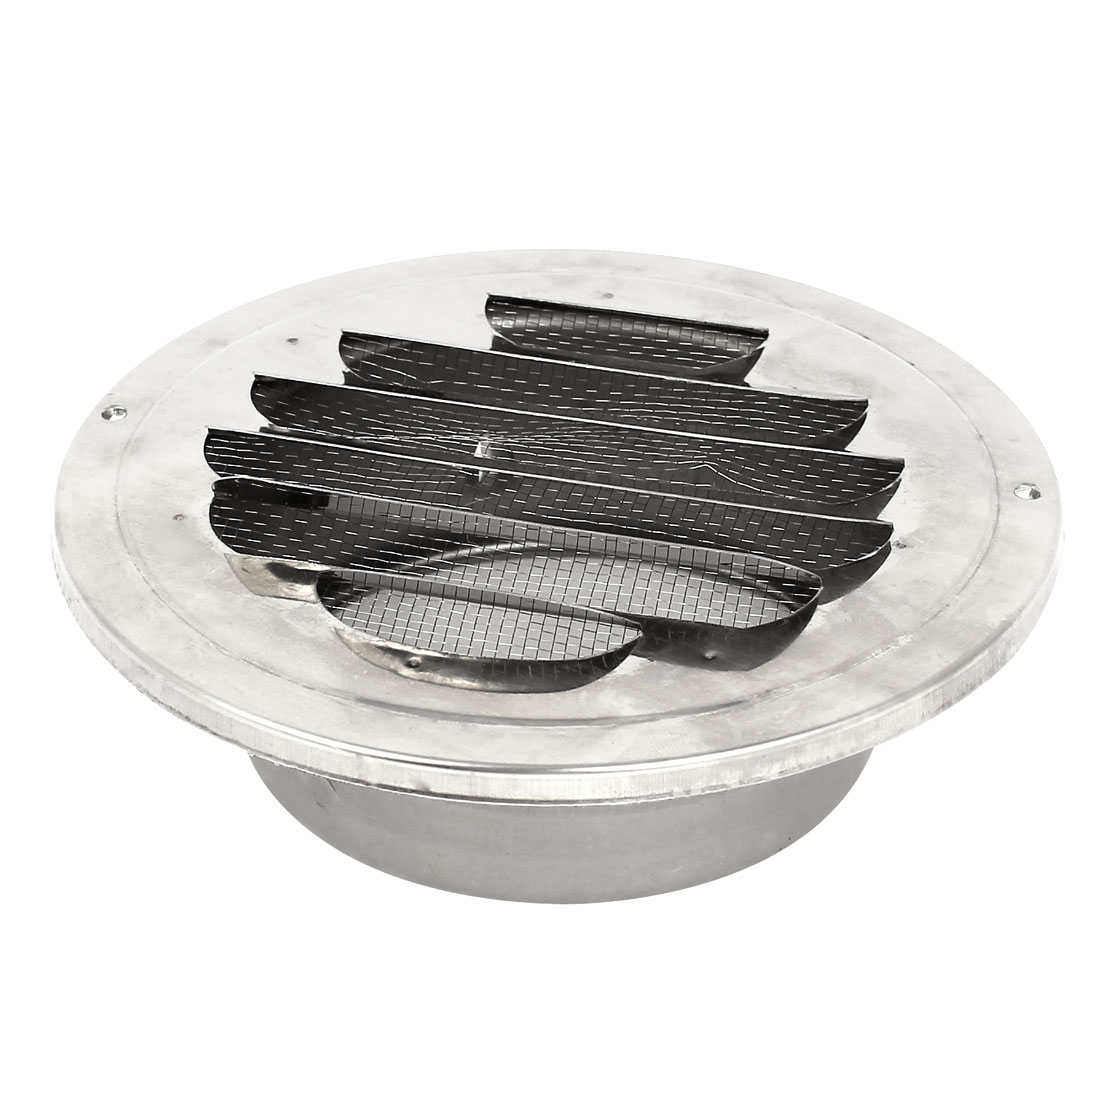 Circle Stainless Steel Air Vent Ducting Ventilation Grille Cover 100mm 4""